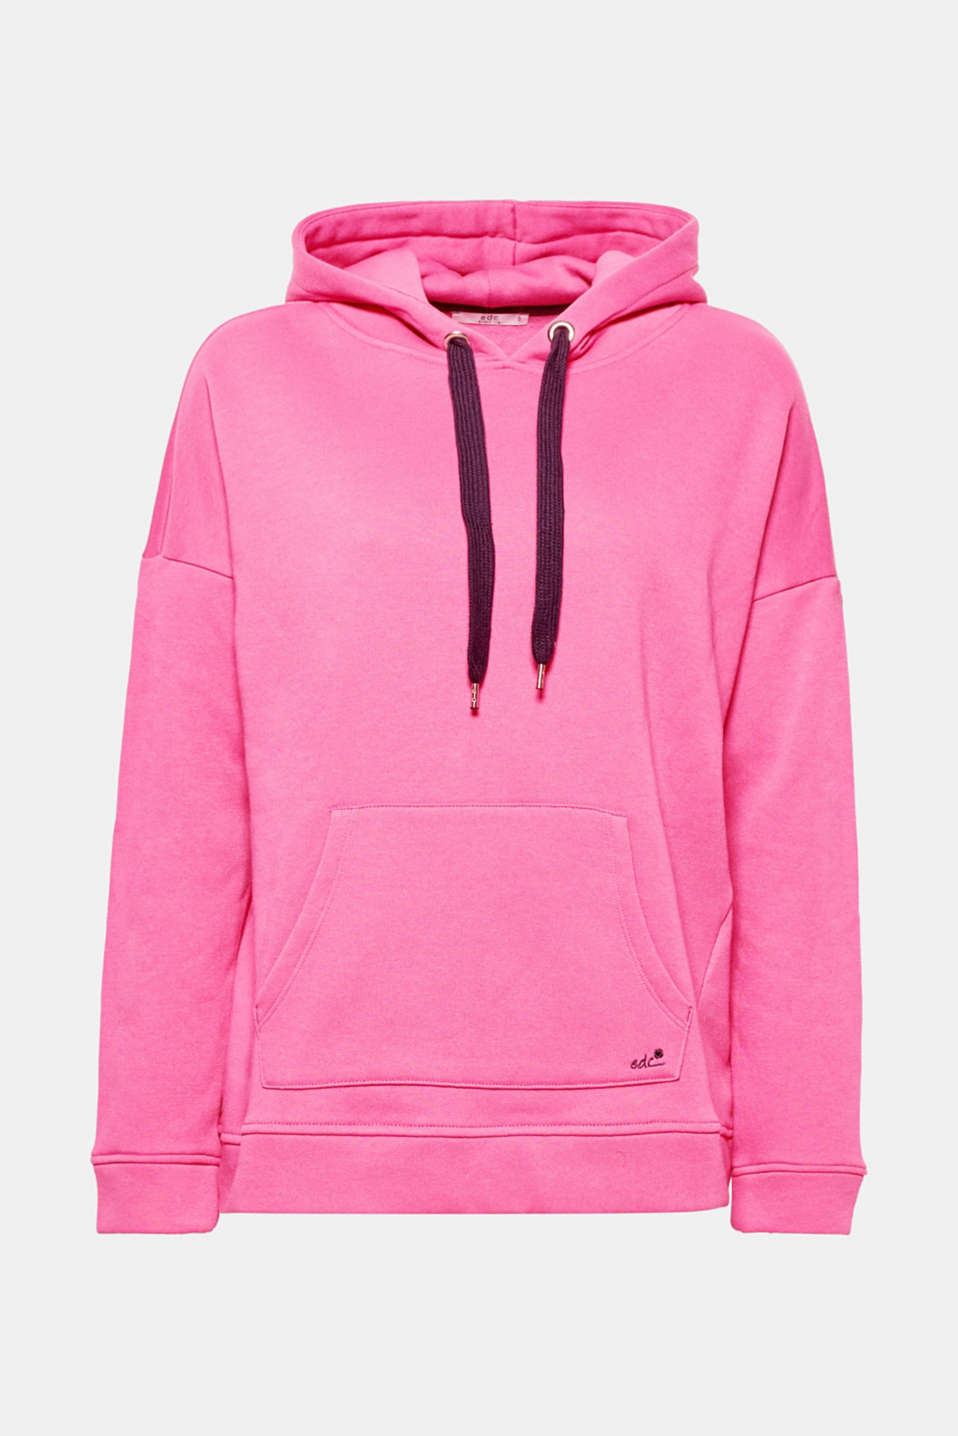 This hoodie with a striking wide drawcord and large hood creates a super relaxed look.